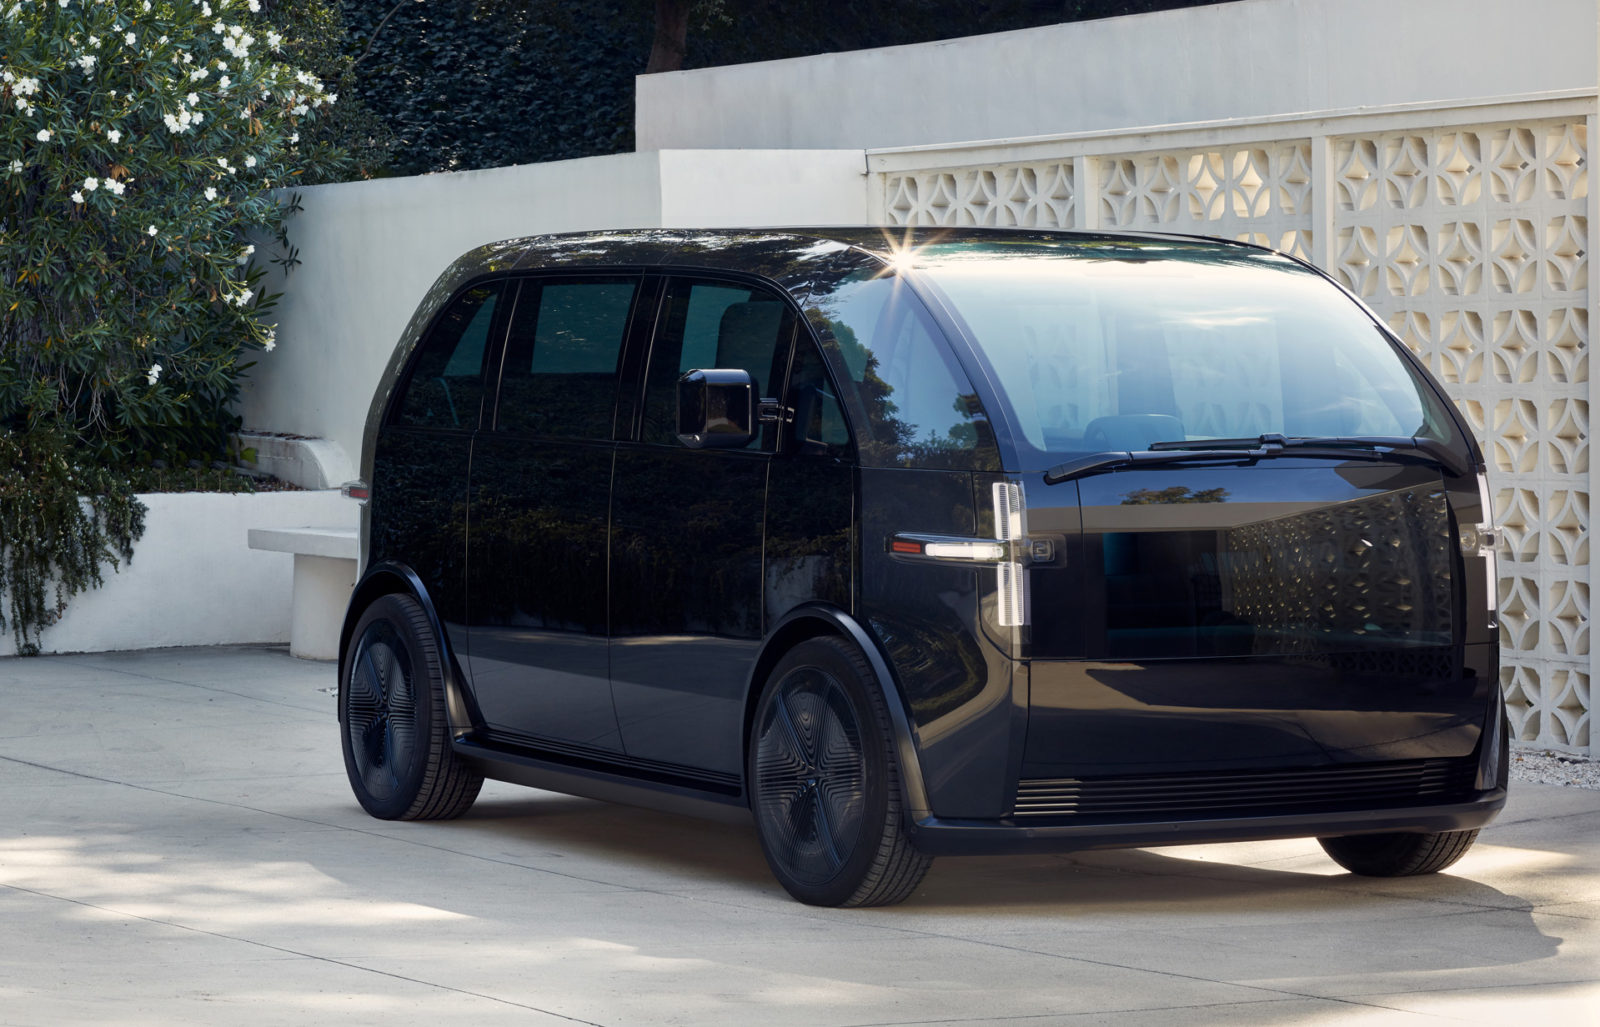 ev-startup-canoo's-first-vehicle-is-a-compact-minivan-priced-from-$34,750